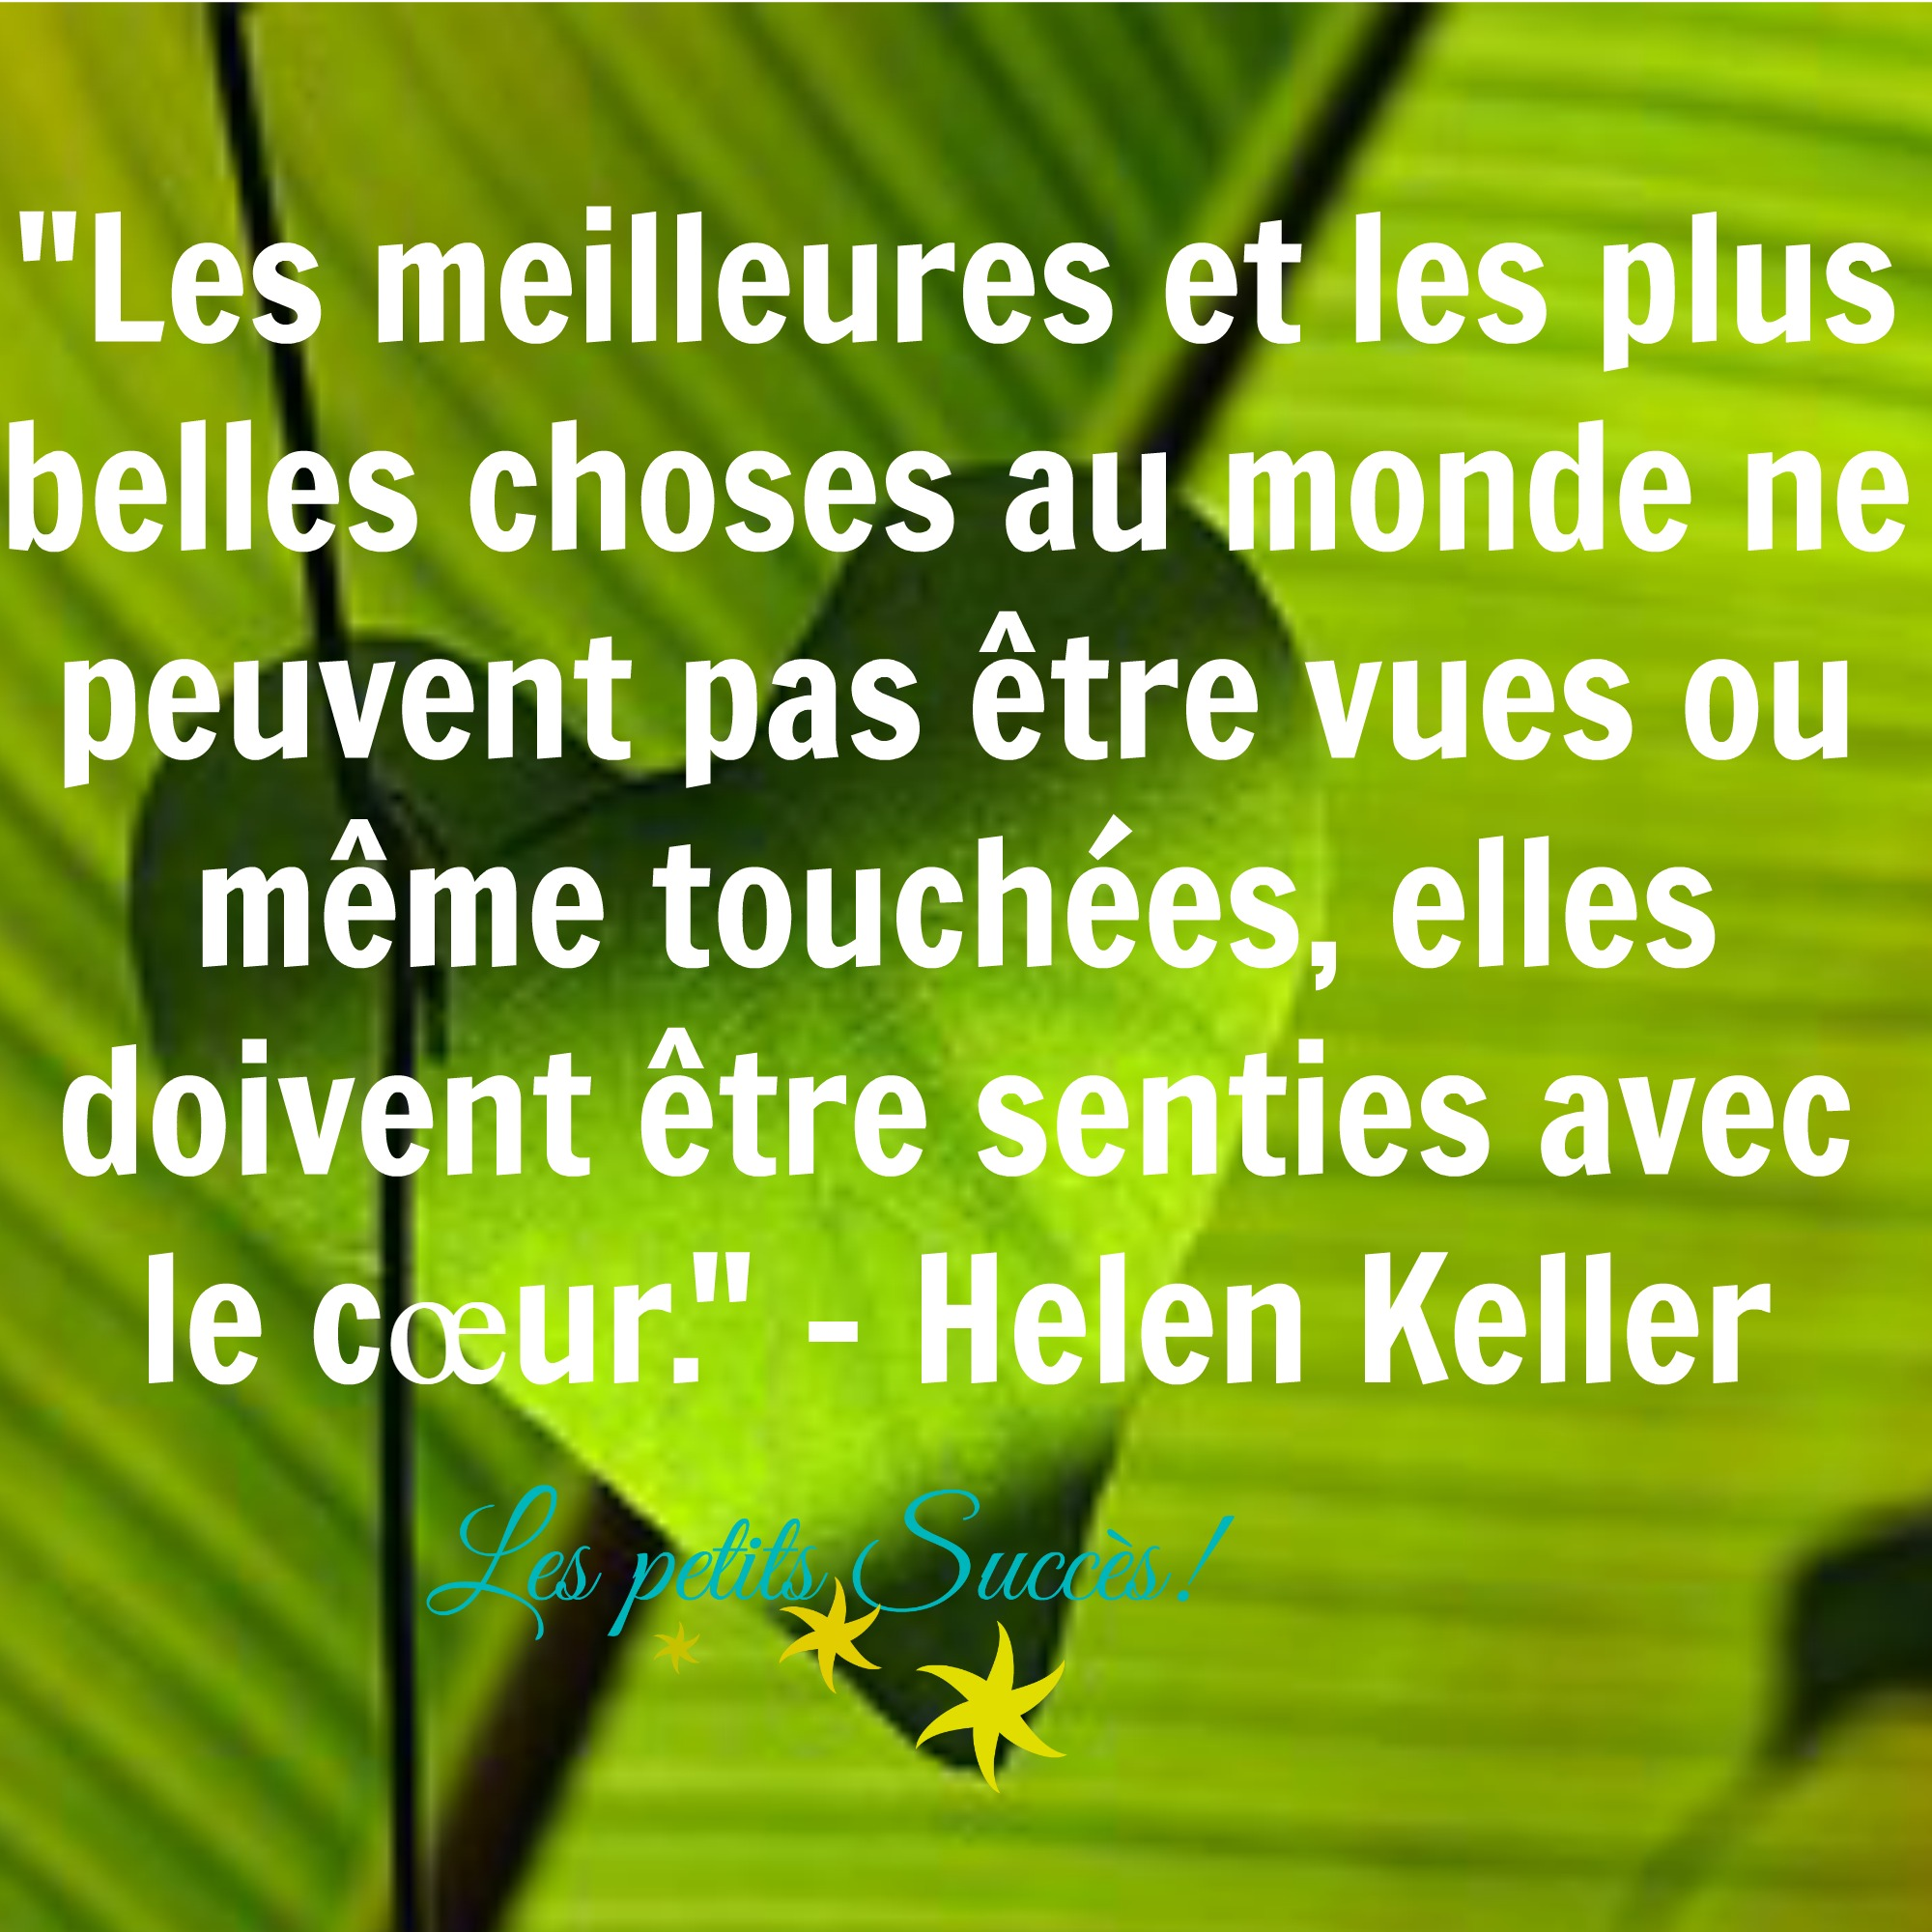 Citation du coeur